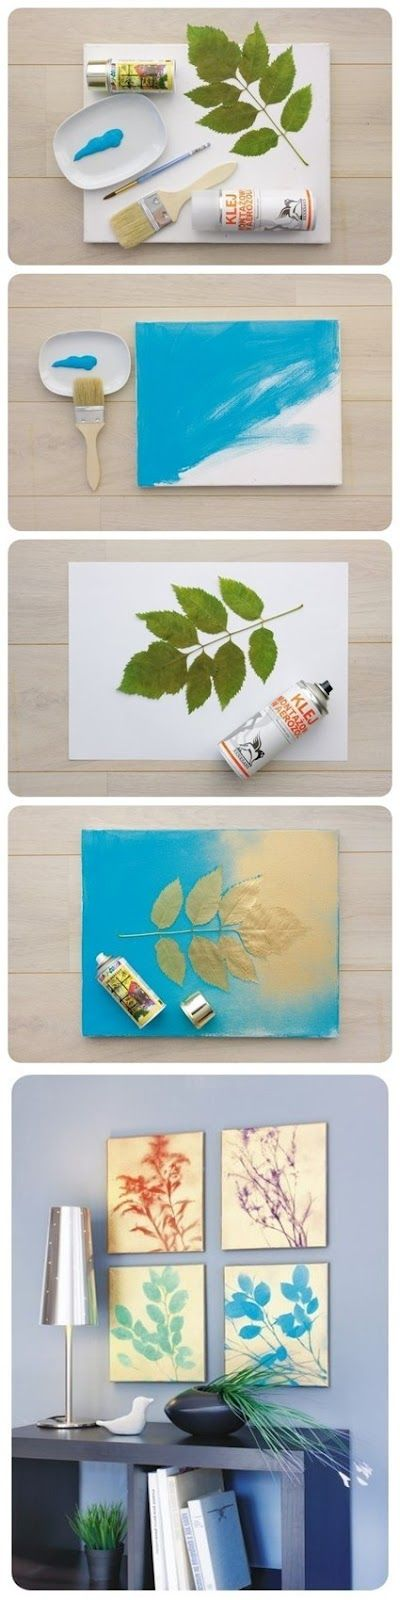 DIY wall painting easy -cool idea!